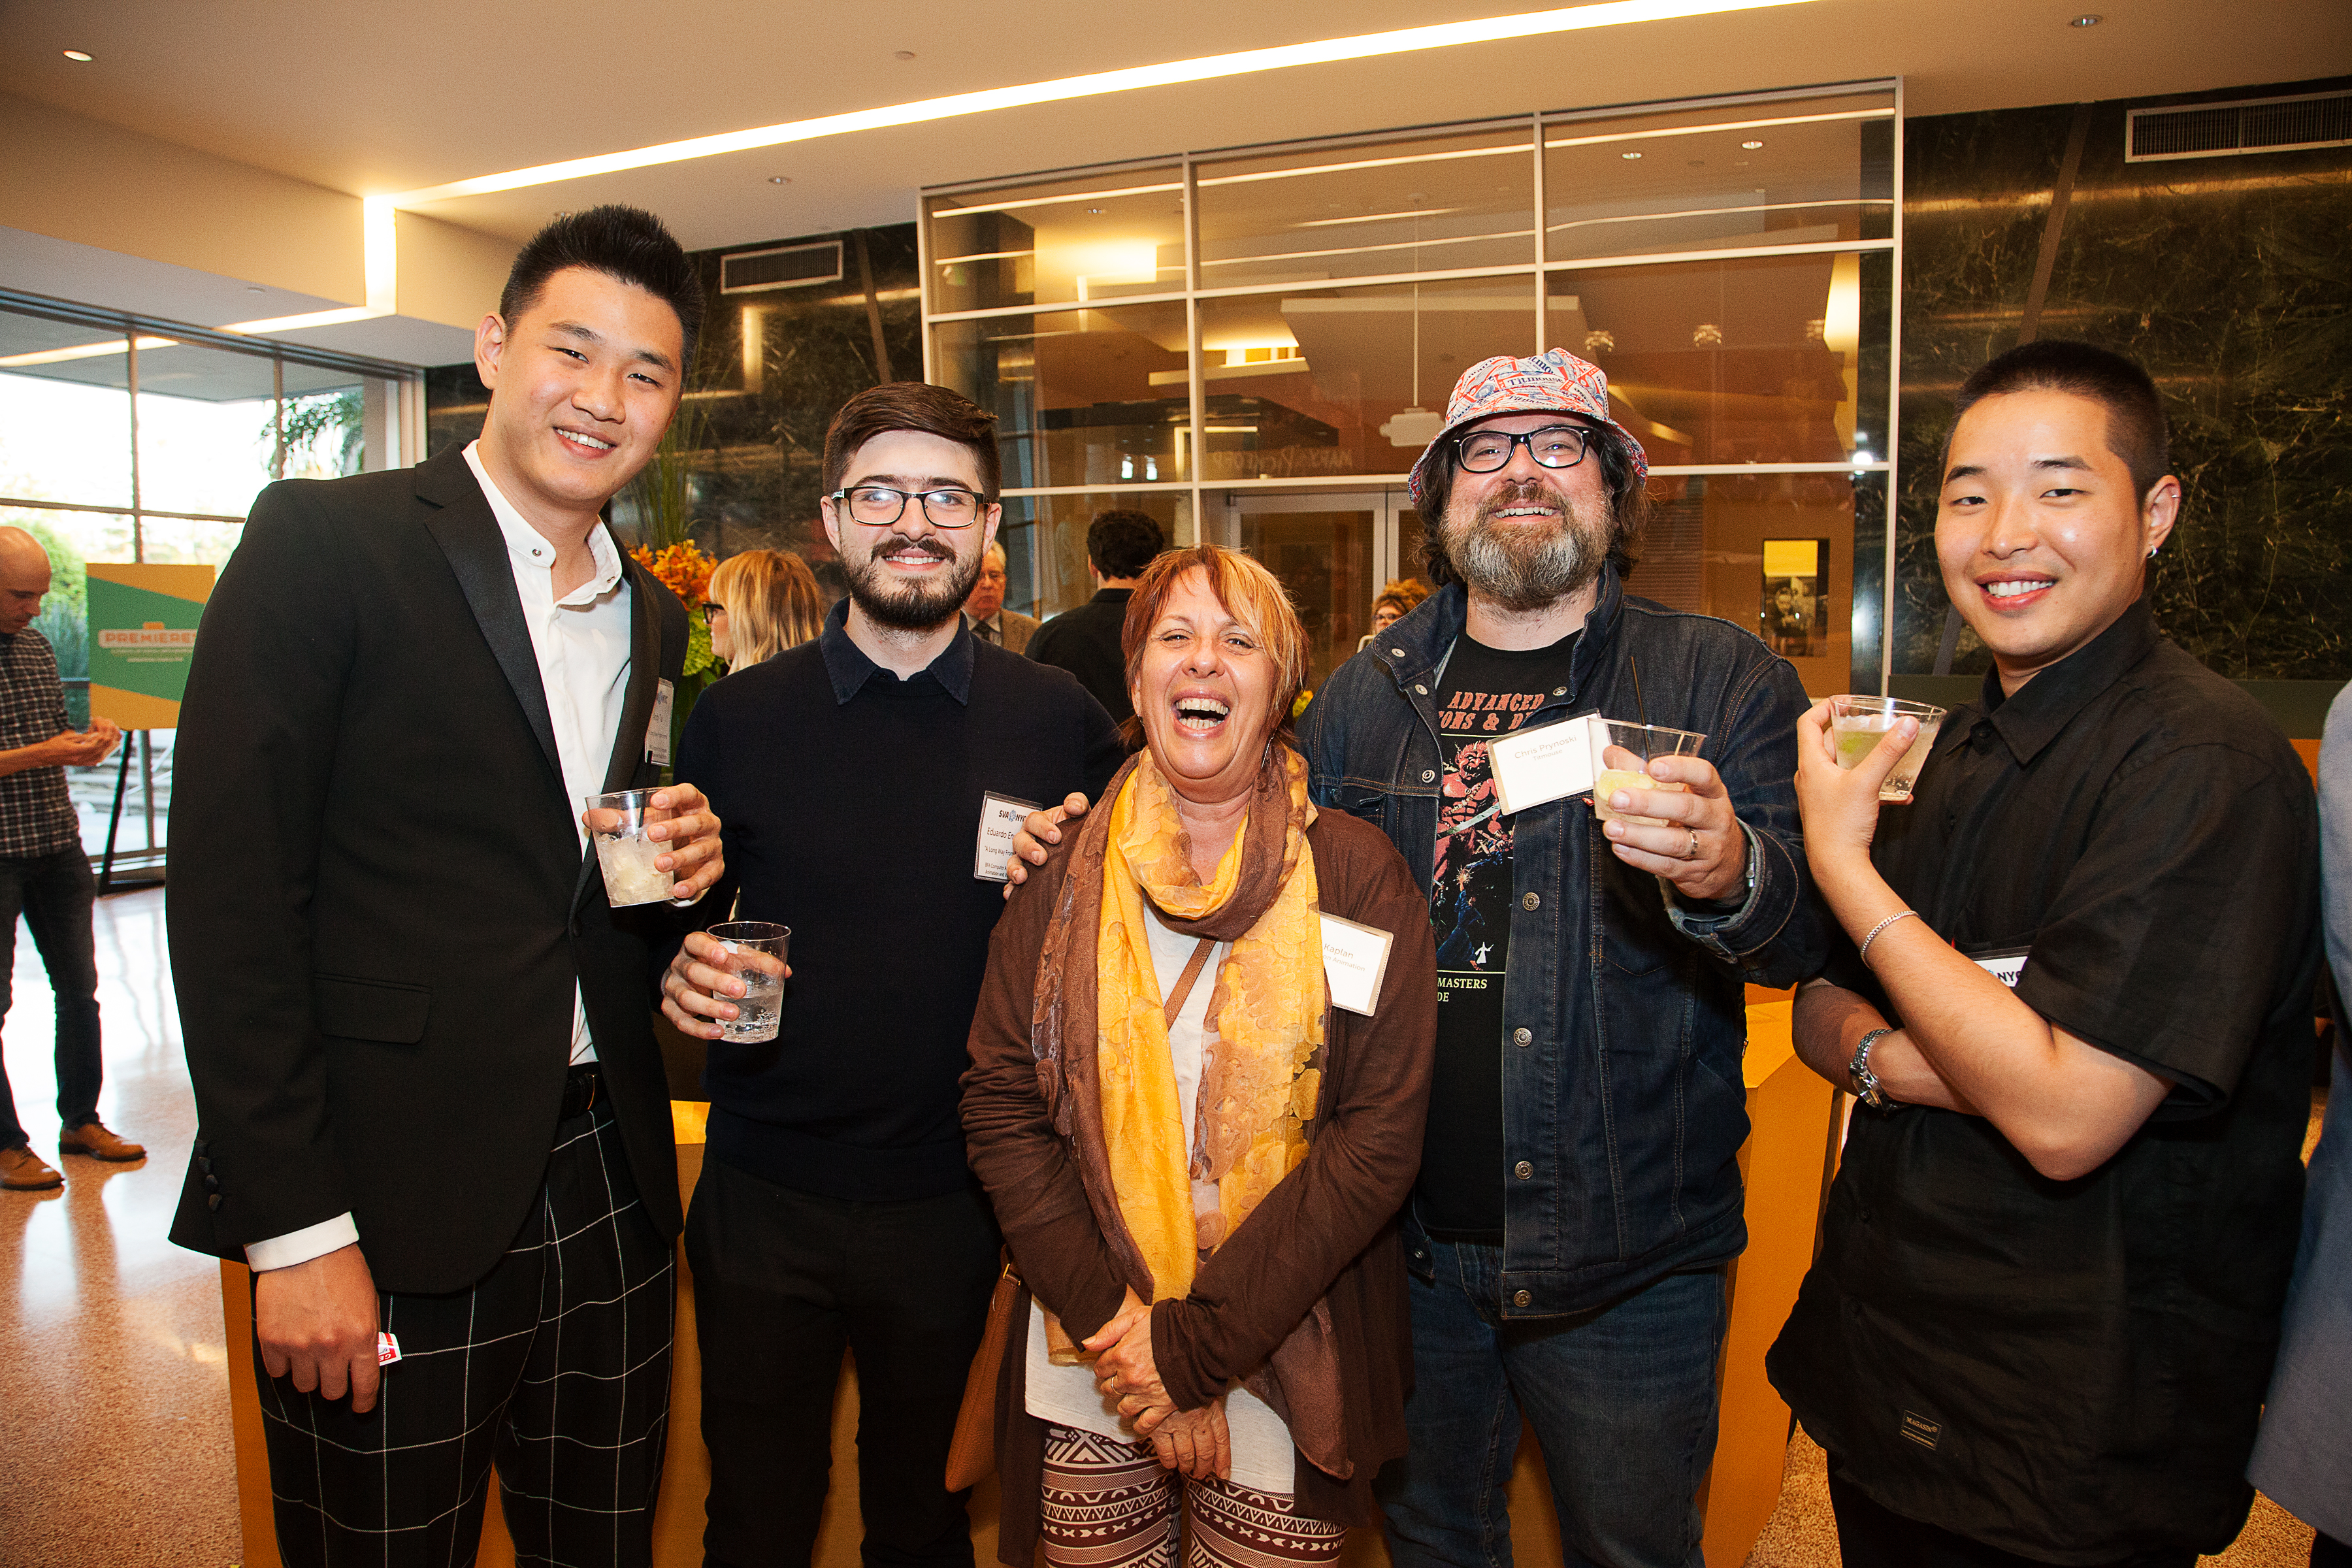 "<p ""="""">Prior to the SVA Premieres screening, guests gathered in the Linwood Dunn Theater's lobby for a networking reception."